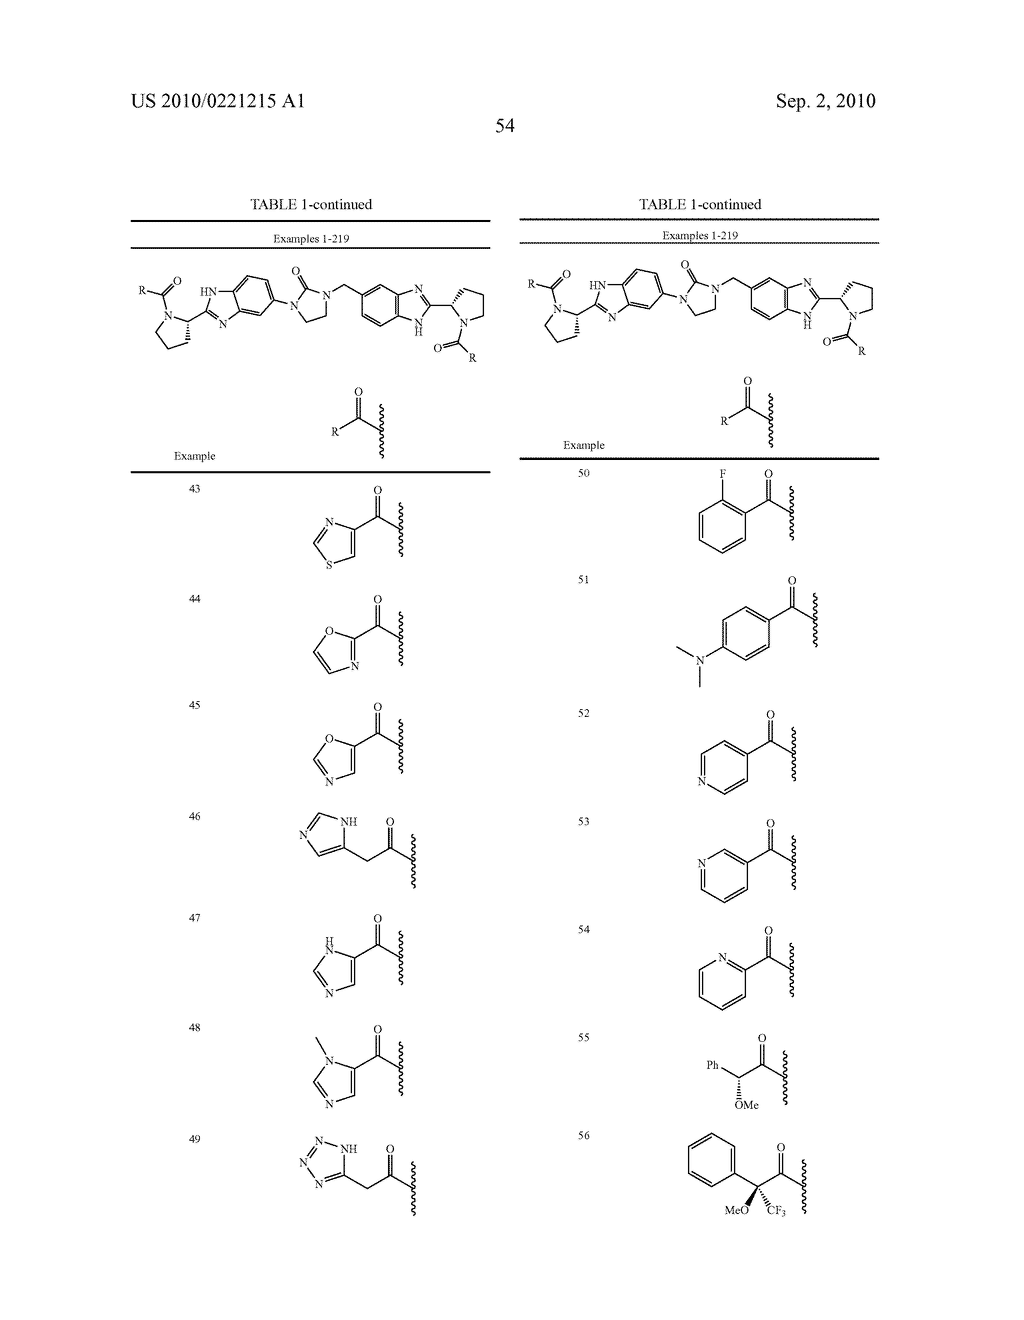 LINKED DIBENZIMIDAZOLE DERIVATIVES - diagram, schematic, and image 55